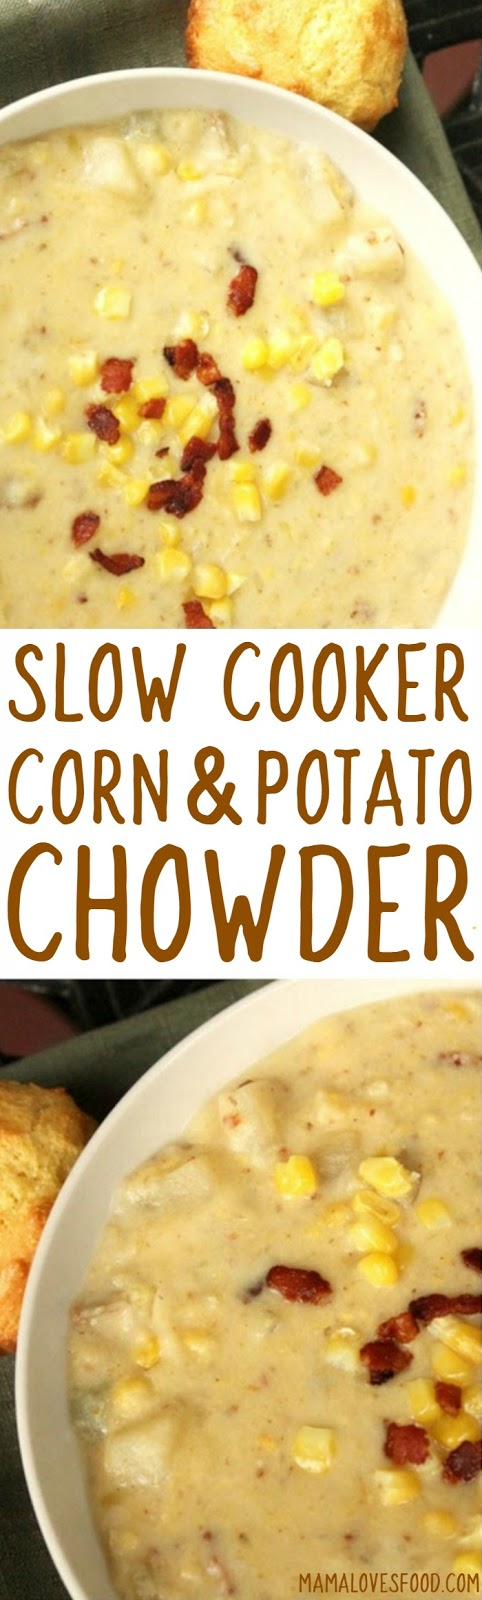 Easy recipe for chowder with potatoes and corn